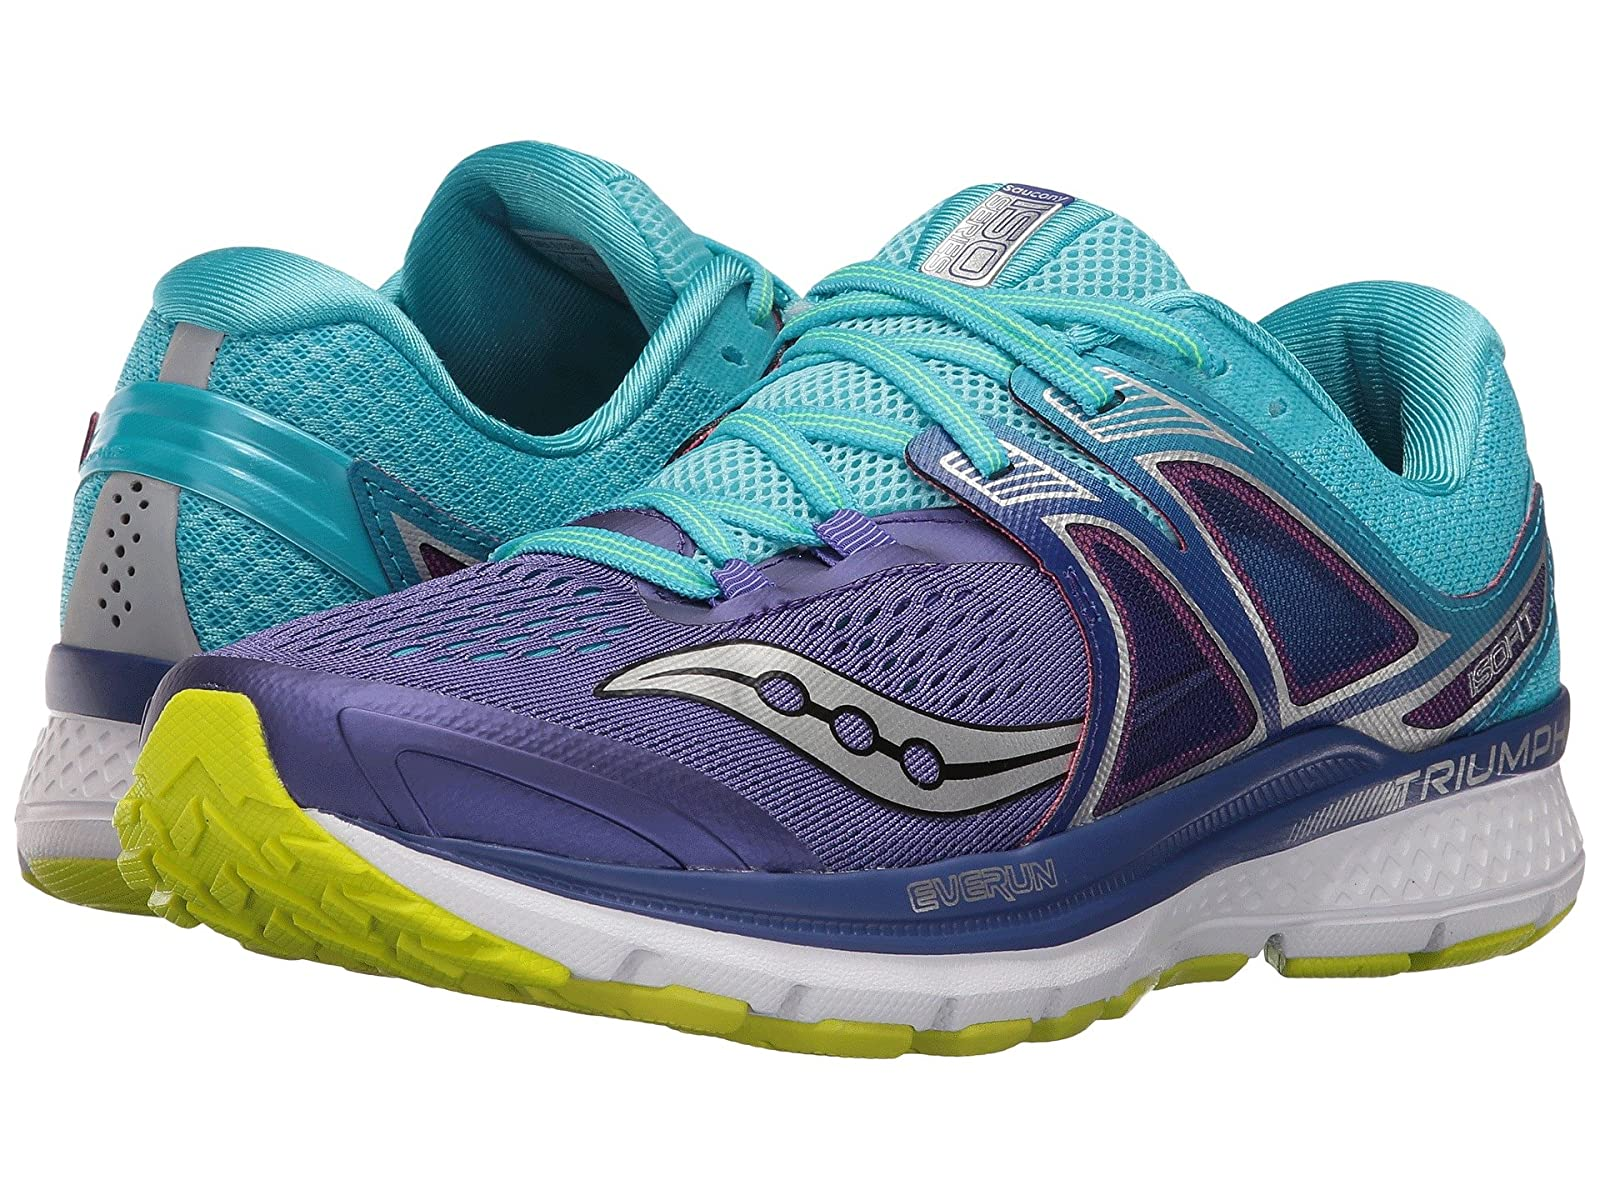 Saucony Triumph ISO 3Cheap and distinctive eye-catching shoes